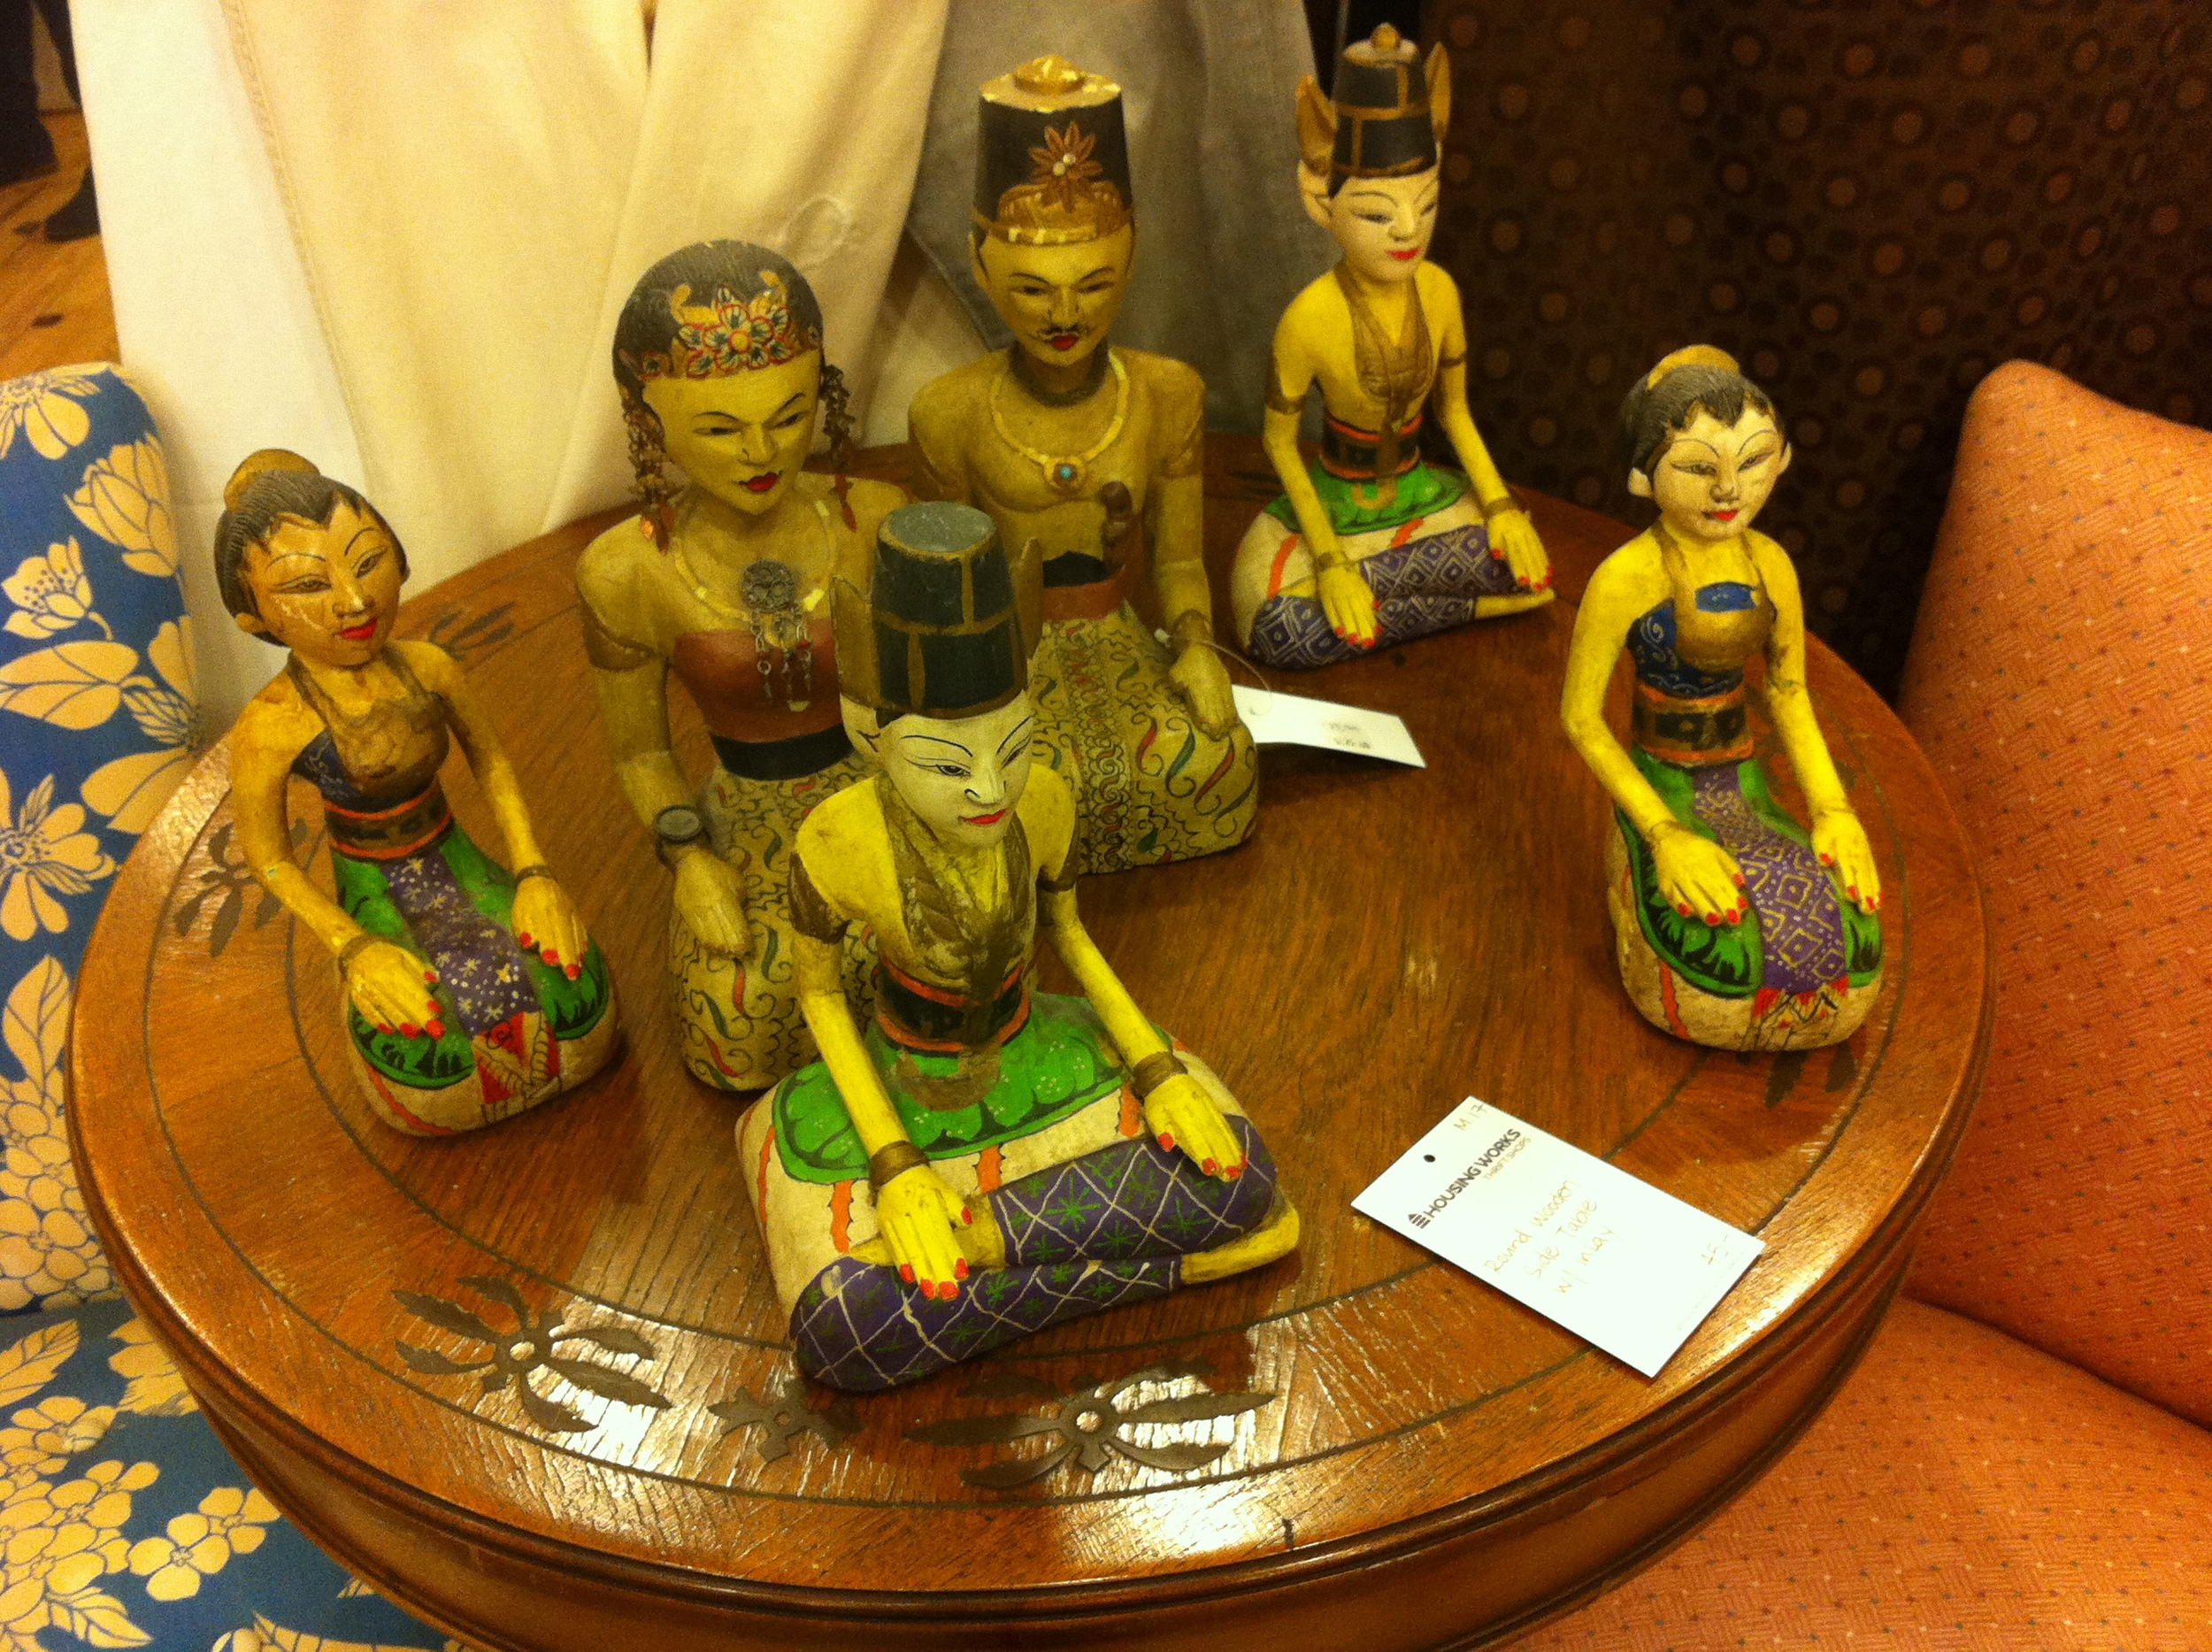 A pic of wooden statues in thrift store